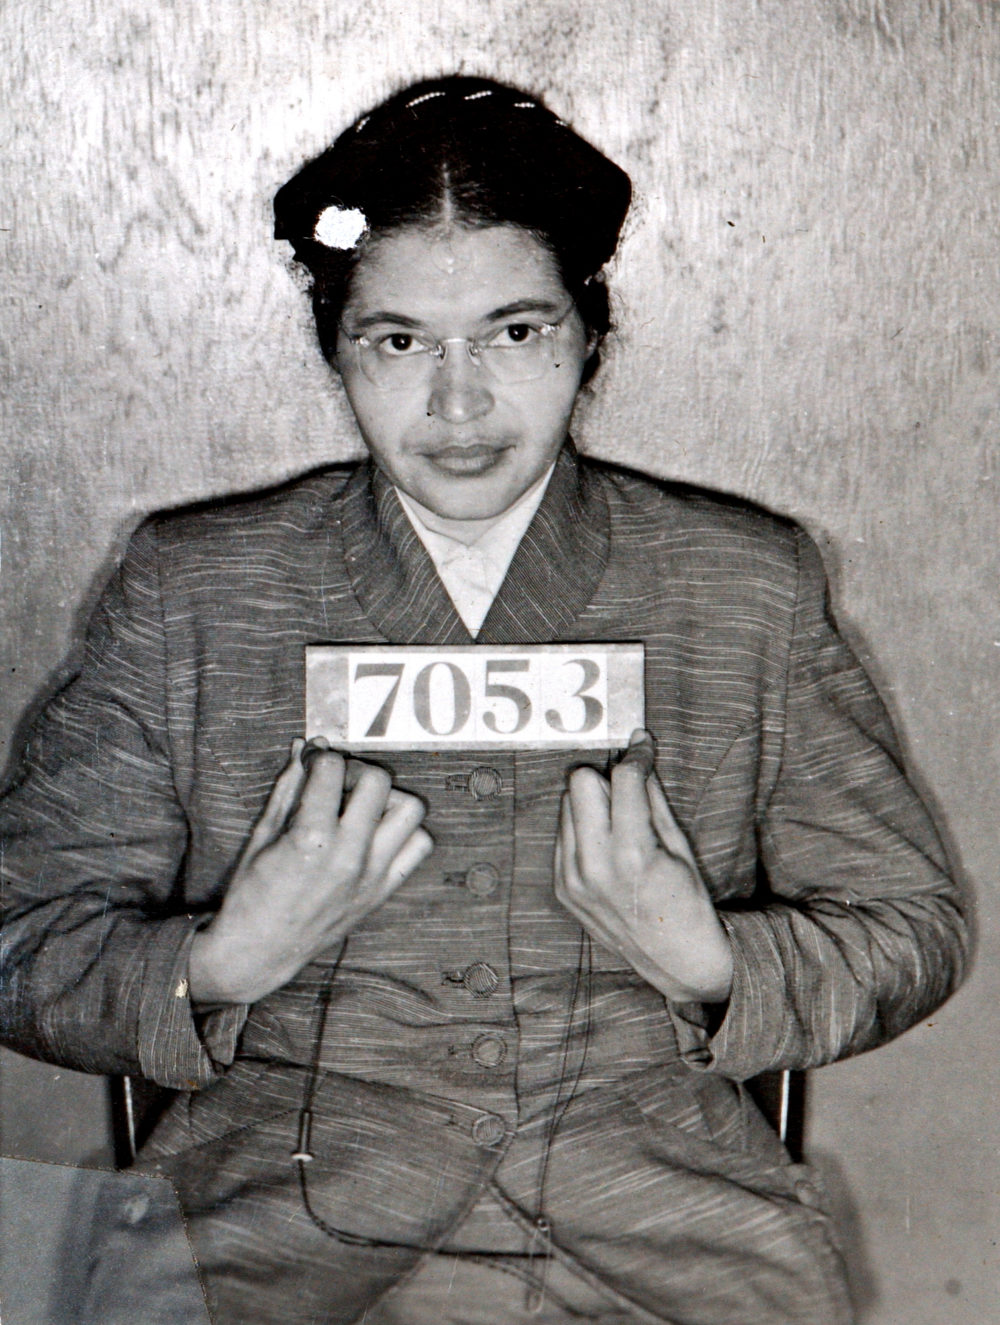 A Montgomery (Ala.) Sheriff's Department booking photo of Rosa Parks taken Feb 22, 1956, after she was arrested for refusing to give up her seat on a bus for a white passenger.  (AP via Montgomery County Sheriff's office)